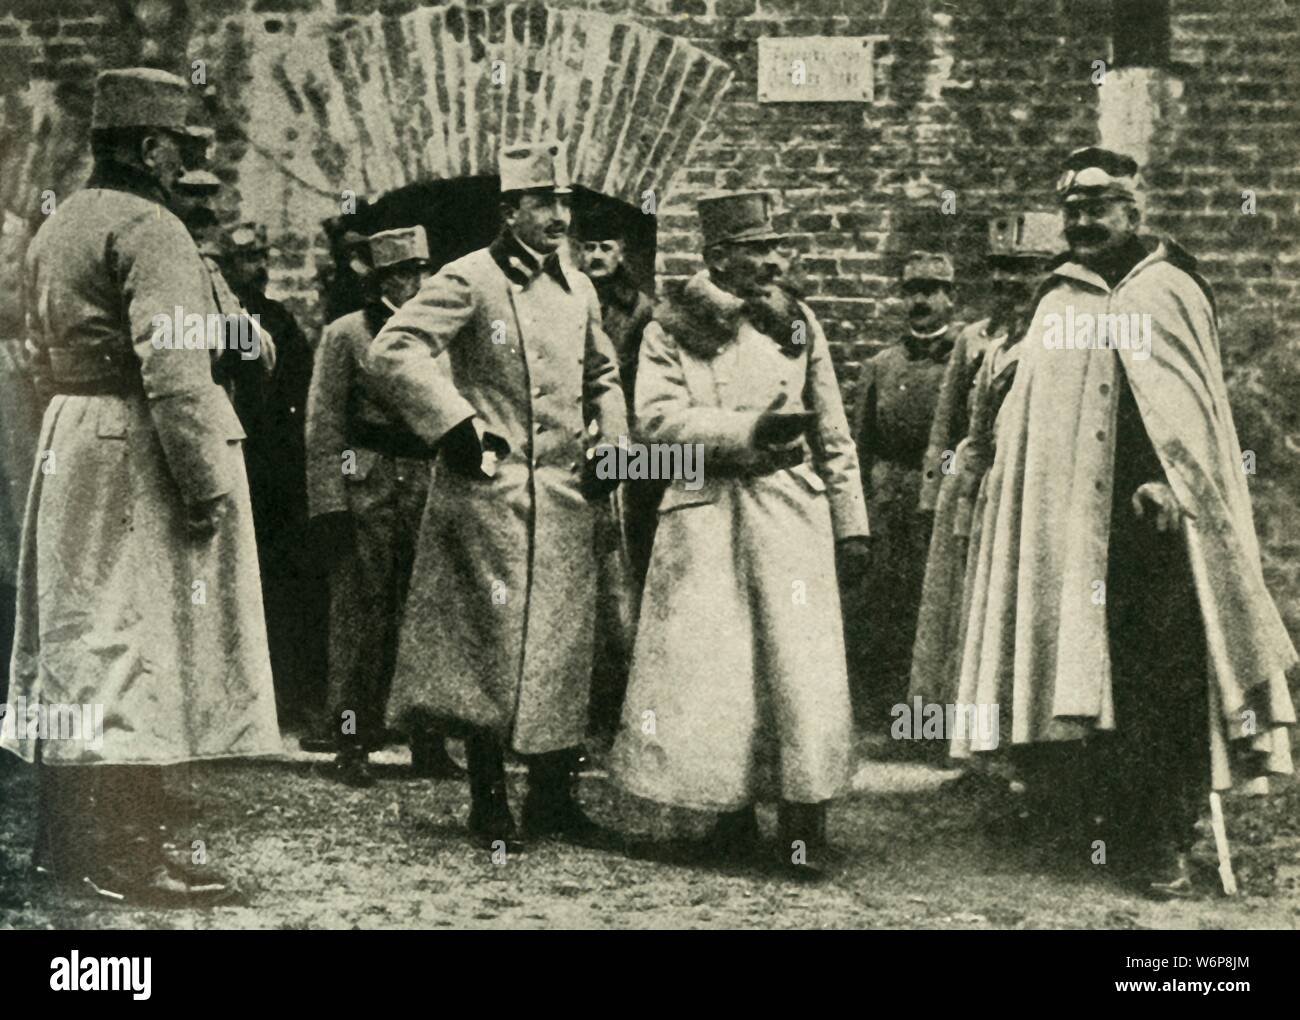 """General Kusmanek and Prince Francis Joseph at Przemysl Fortress, First World War, 1915, (c1920). 'The First Defence of Przemysl: General Kusmanek, the Austrian Commandant, conducting Prince Charles Francis Joseph round the Fortifications' at the fortress of Przemysl (now in south-eastern Poland). Hermann Kusmanek von Burgneustädten (1860-1934) was a Colonel-General of the Austro-Hungarian Army. Prince Francis Joseph of Braganza (1879-1919) served as an officer. From """"The Great World War - A History"""" Volume III, edited by Frank A Mumby. [The Gresham Publishing Company Ltd, London Stock Photo"""